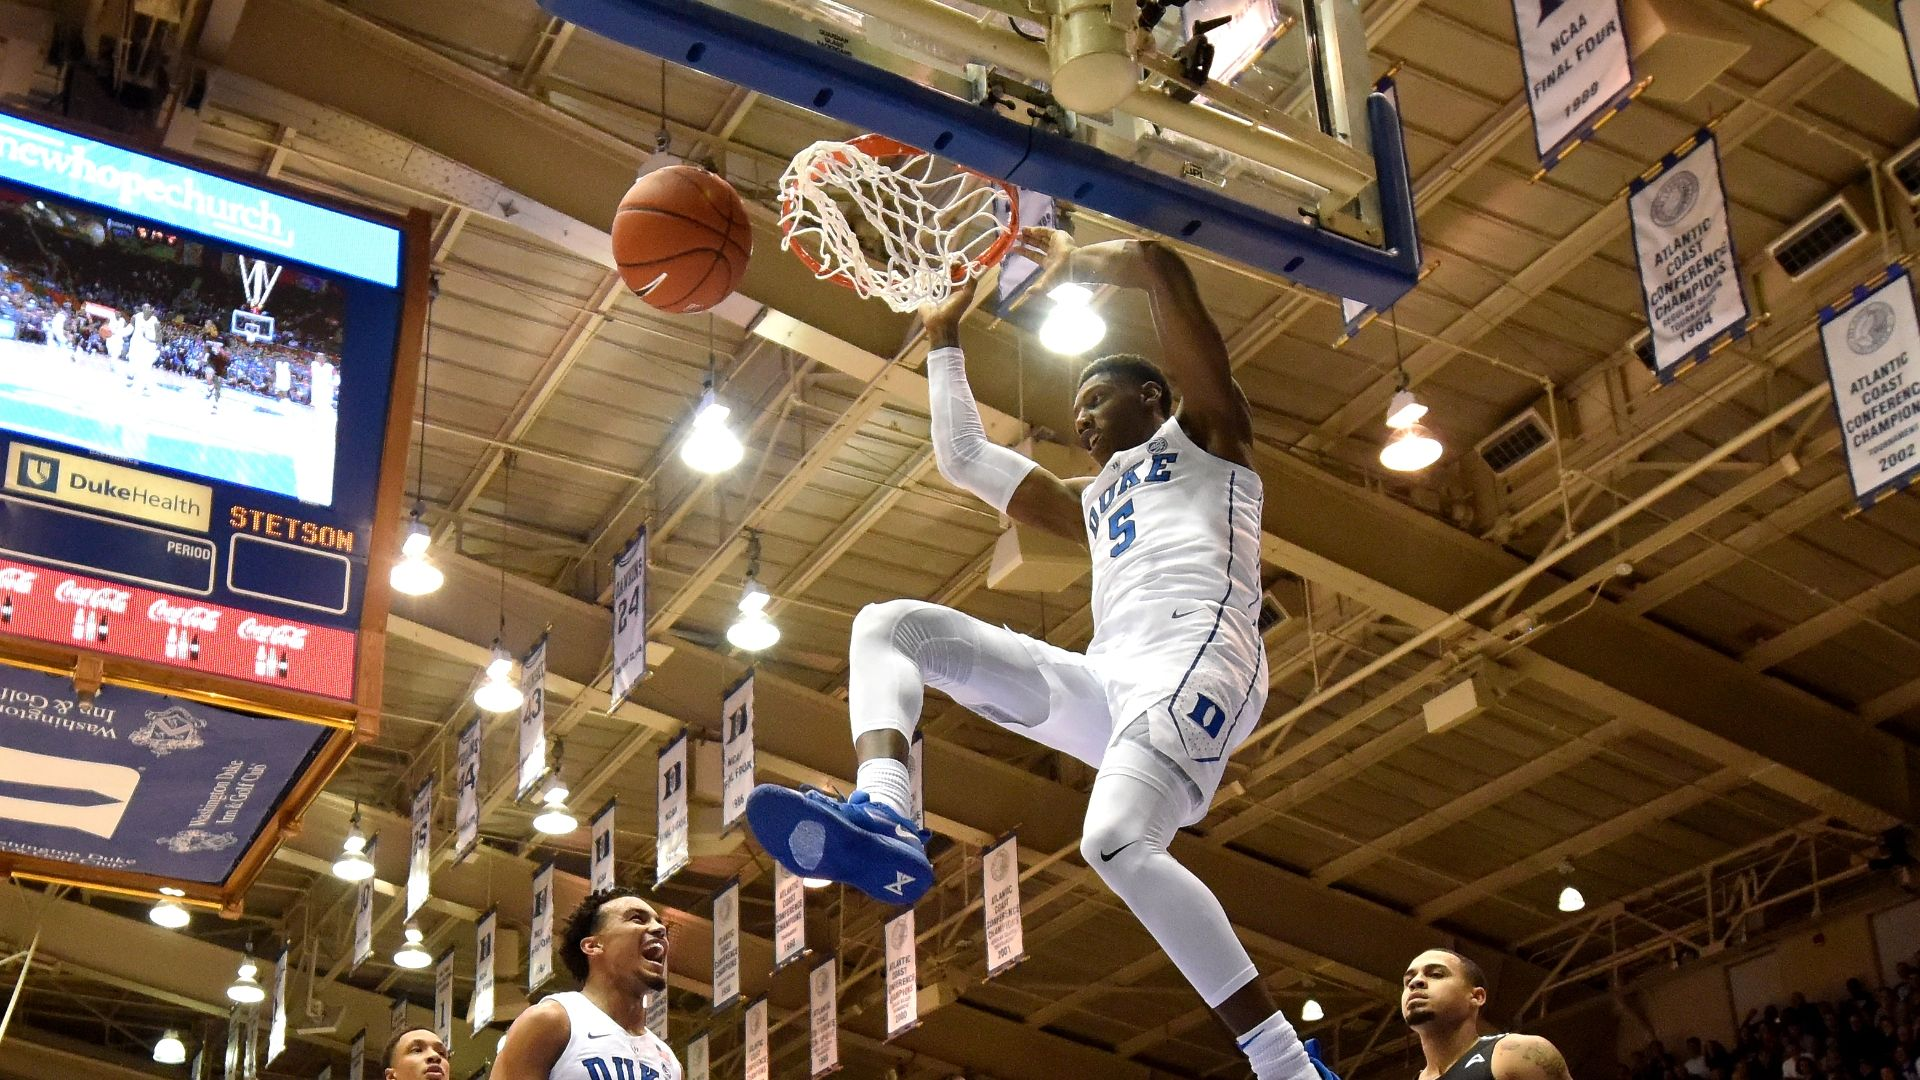 Duke Puts On Dunk Show In Blowout Win Over Stetson